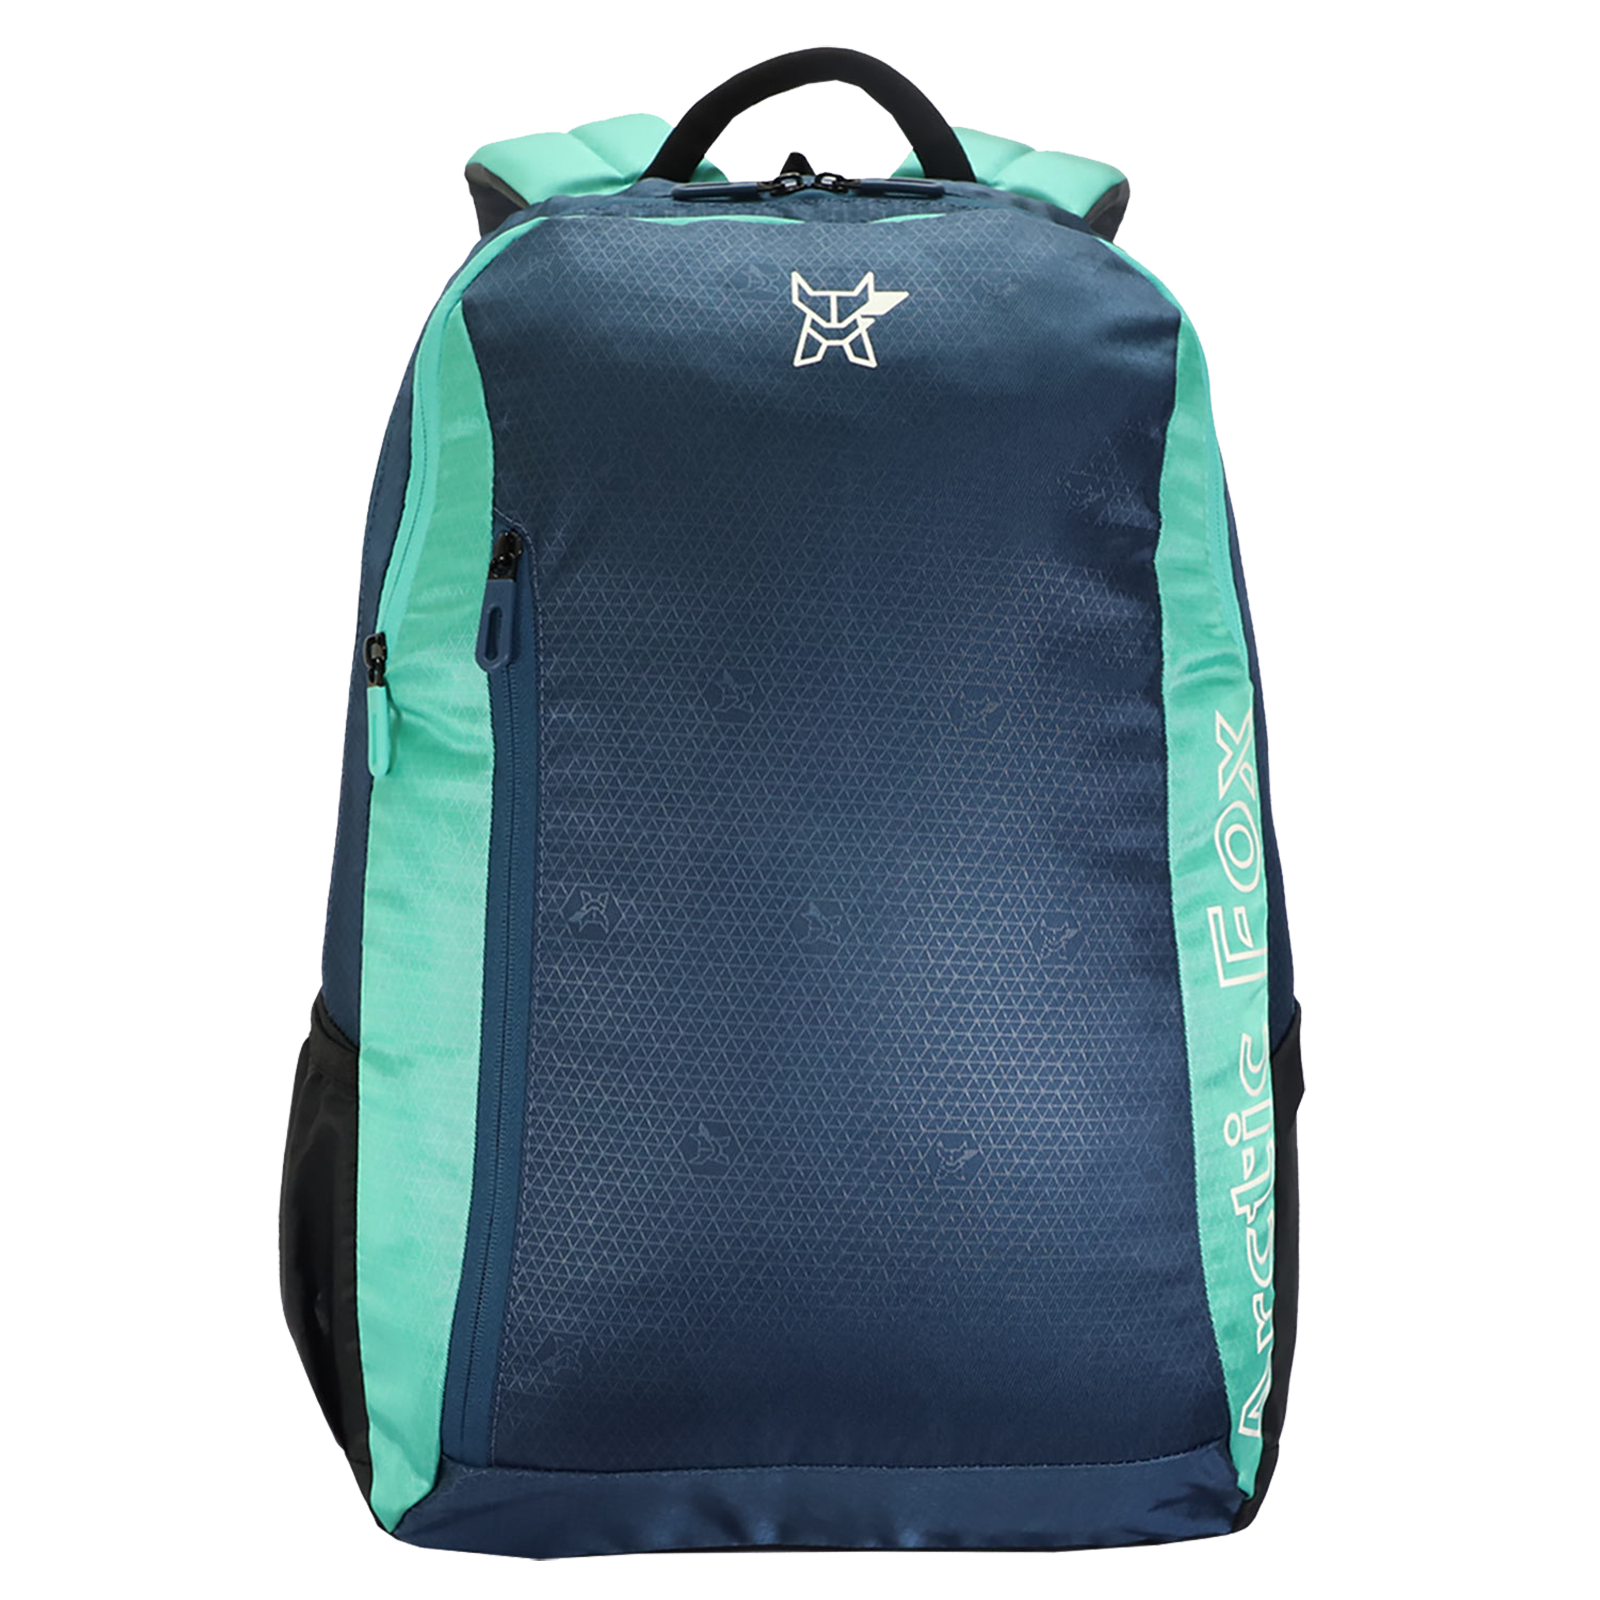 Arctic Fox Stroke 29.5 Litres PU Coated Polyester Backpack (2 Spacious Compartments, FTEBPKDDVON085030,Deep Dive)_1